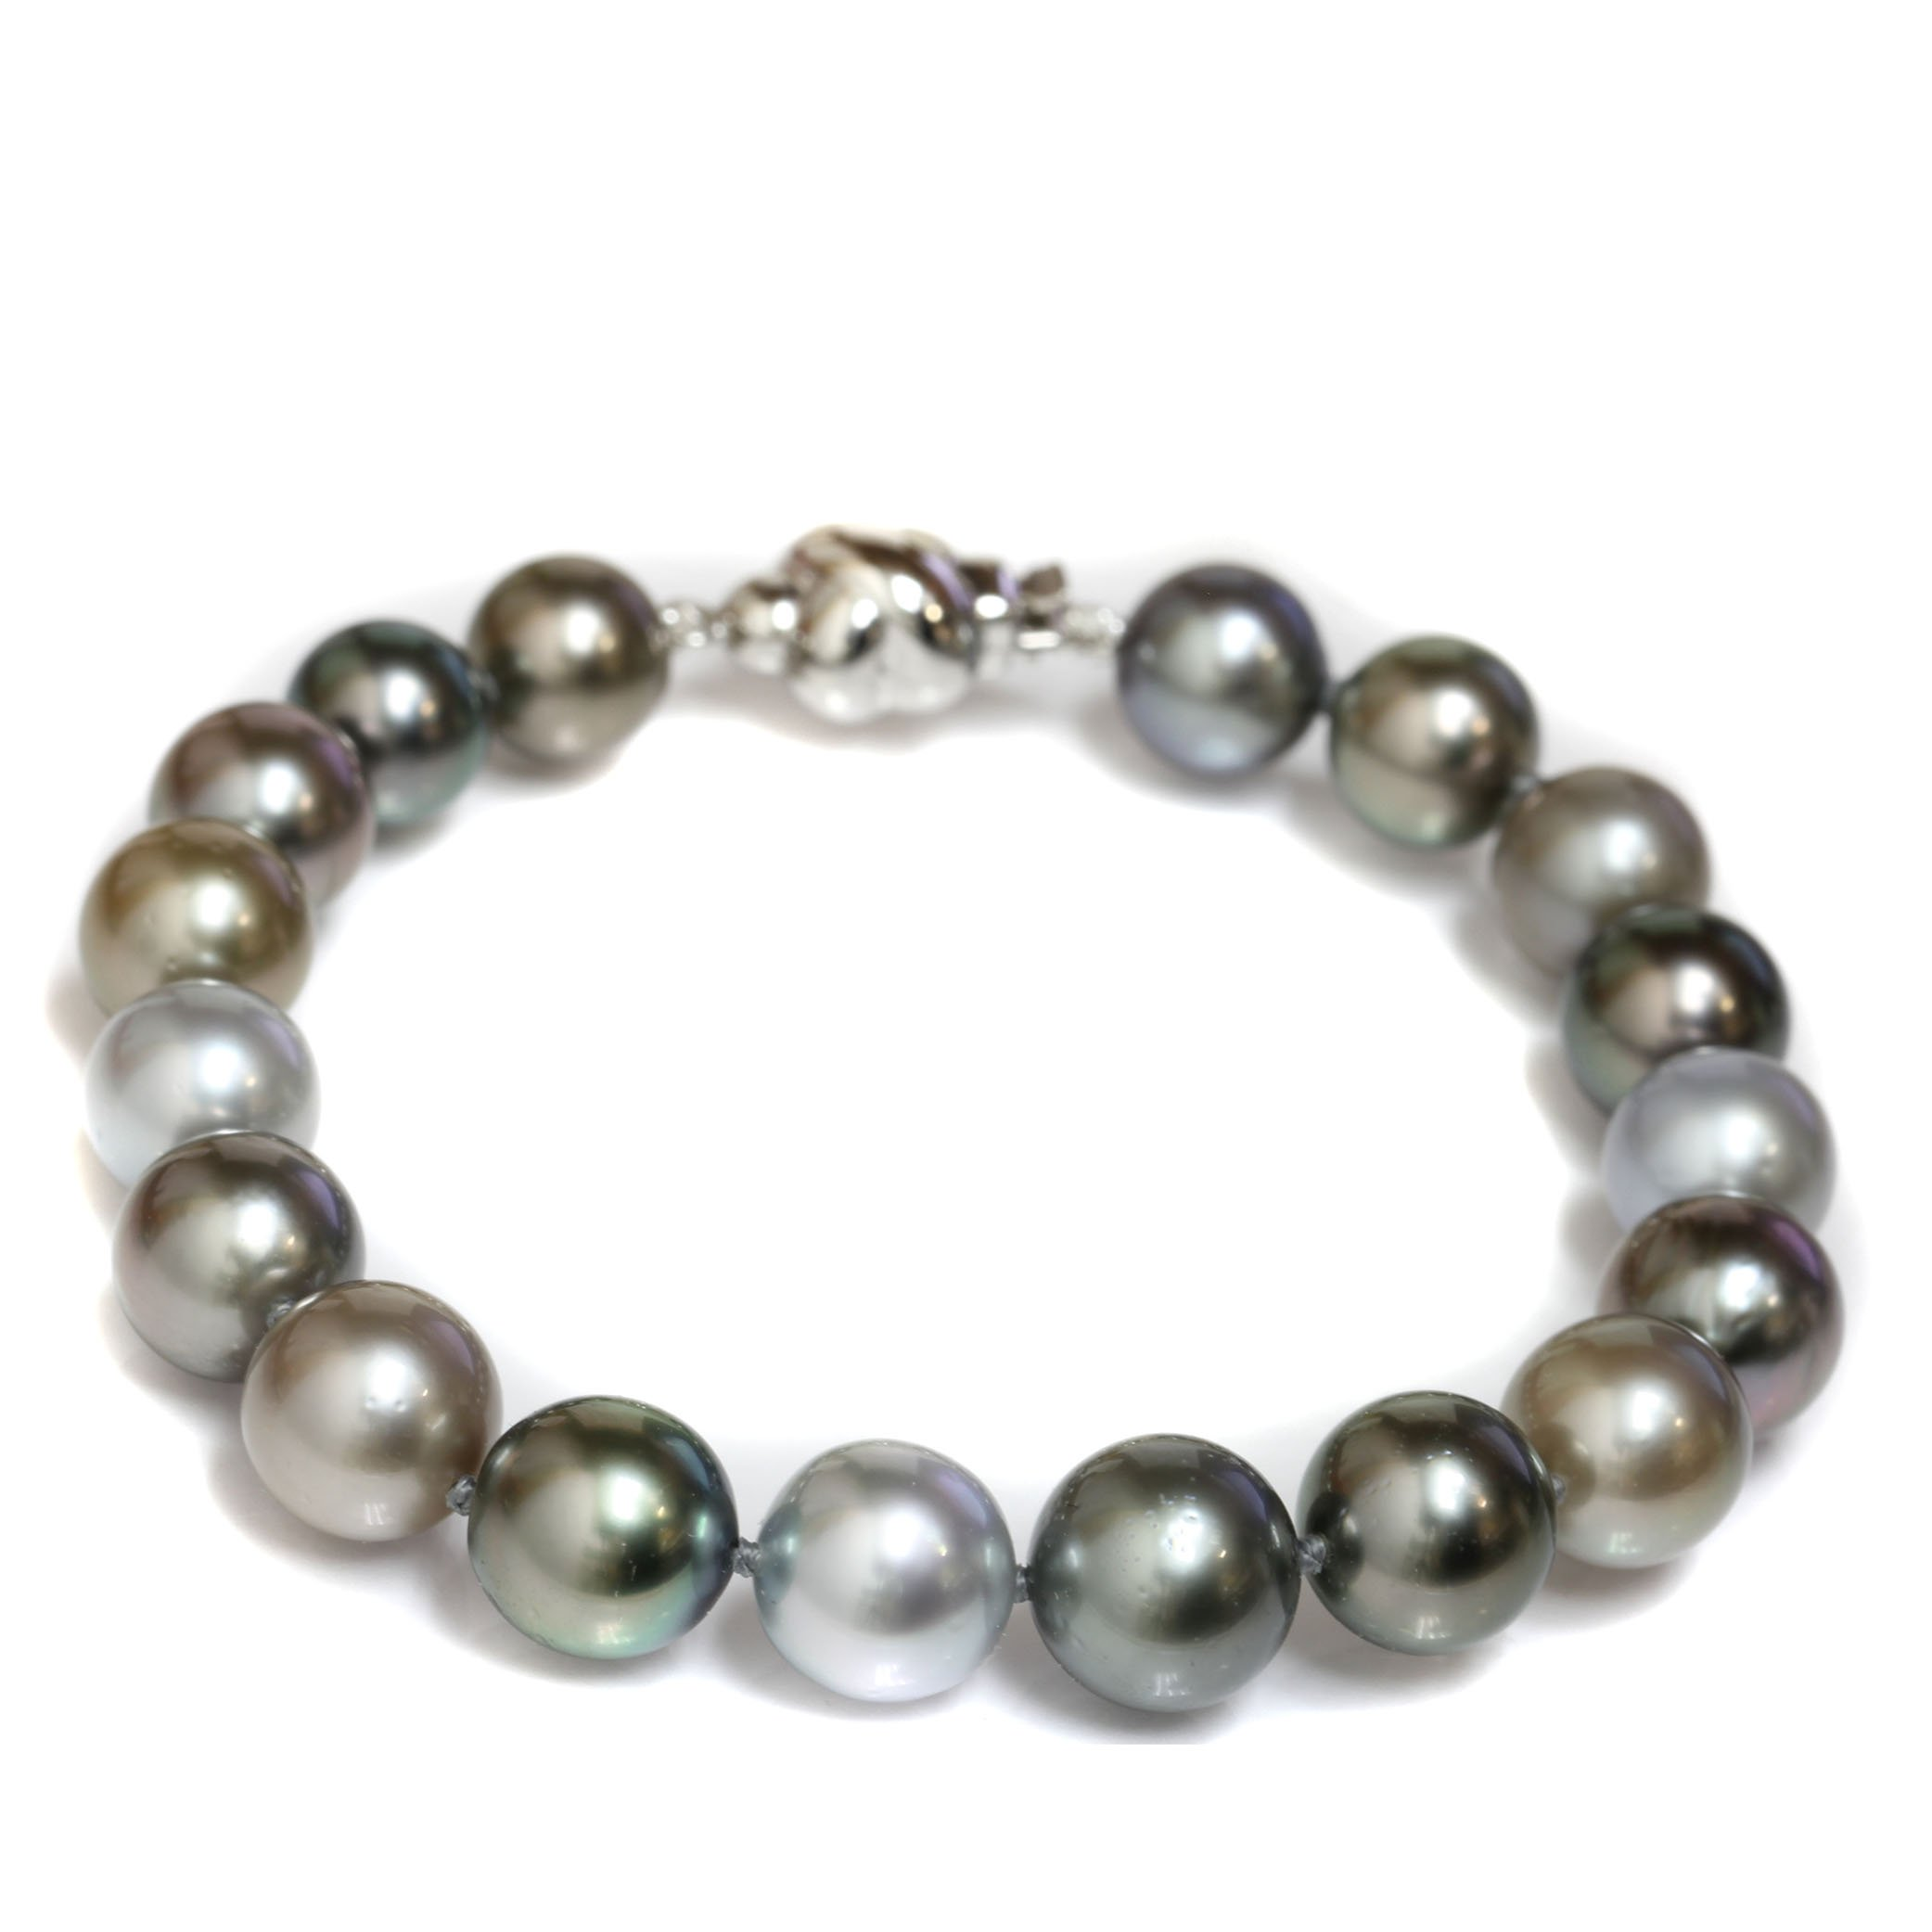 14k Gold - Tahitian South Sea Pearl Bracelet 10 - 8 MM AAA Natural Rare color Multicolor